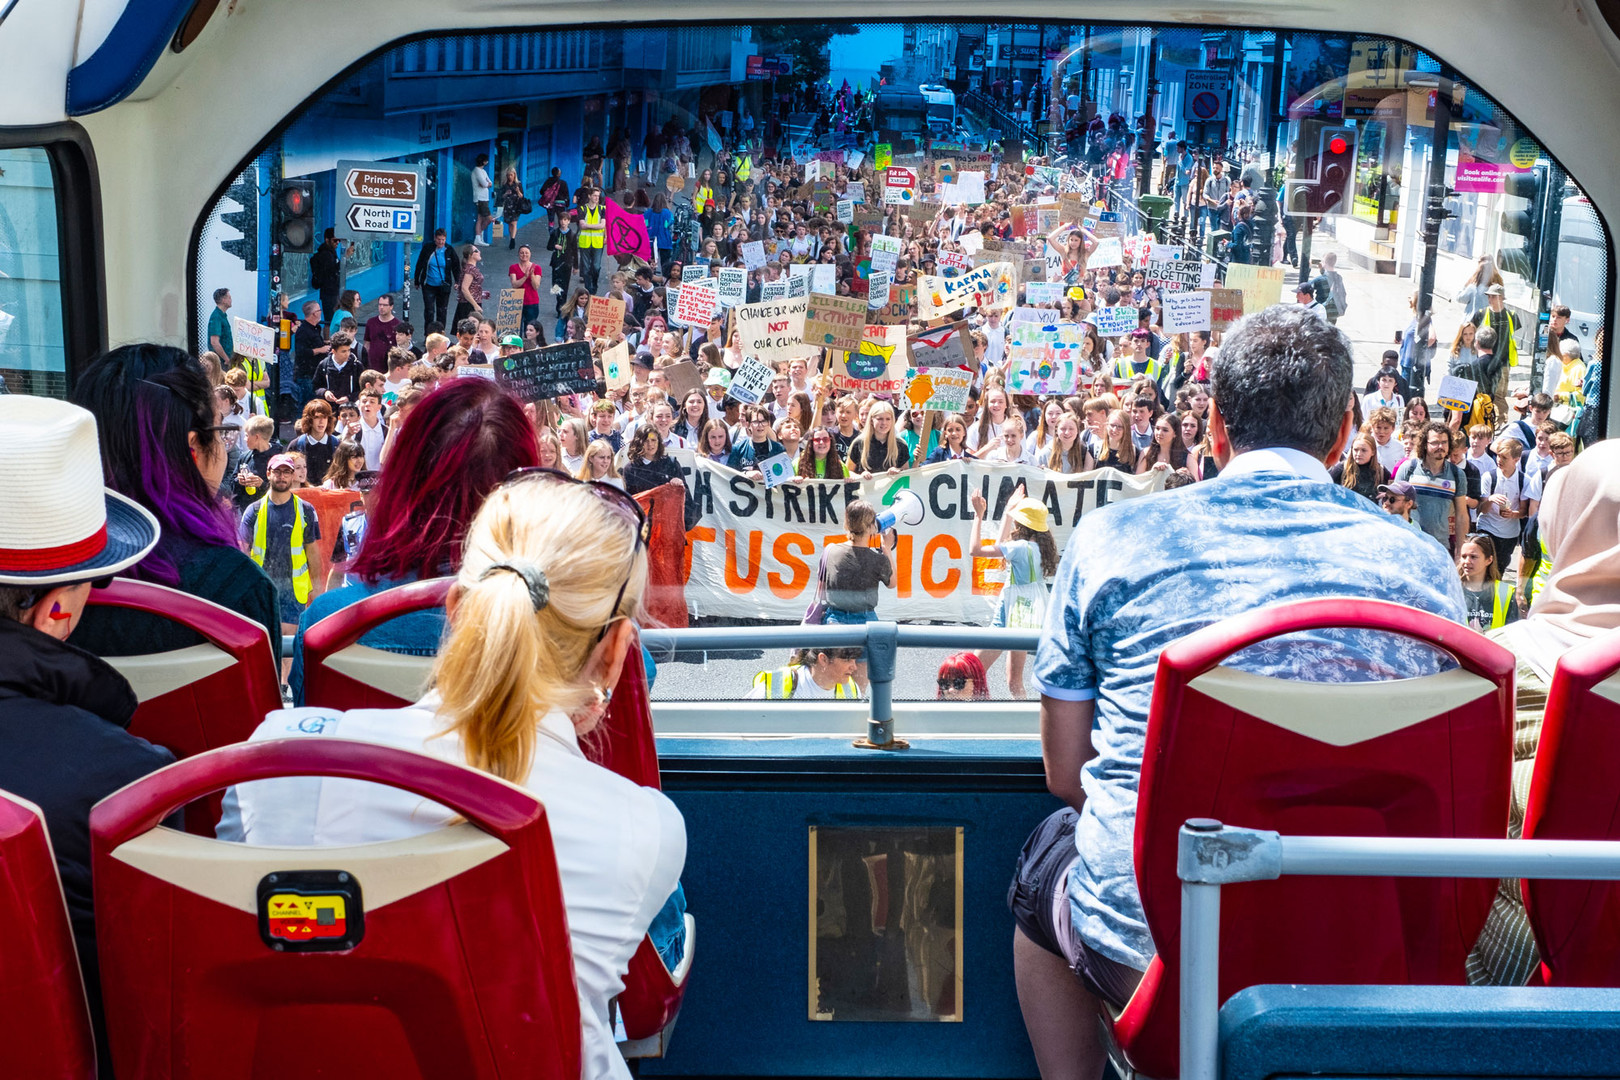 Youth Strike for Climate Change in Brighton